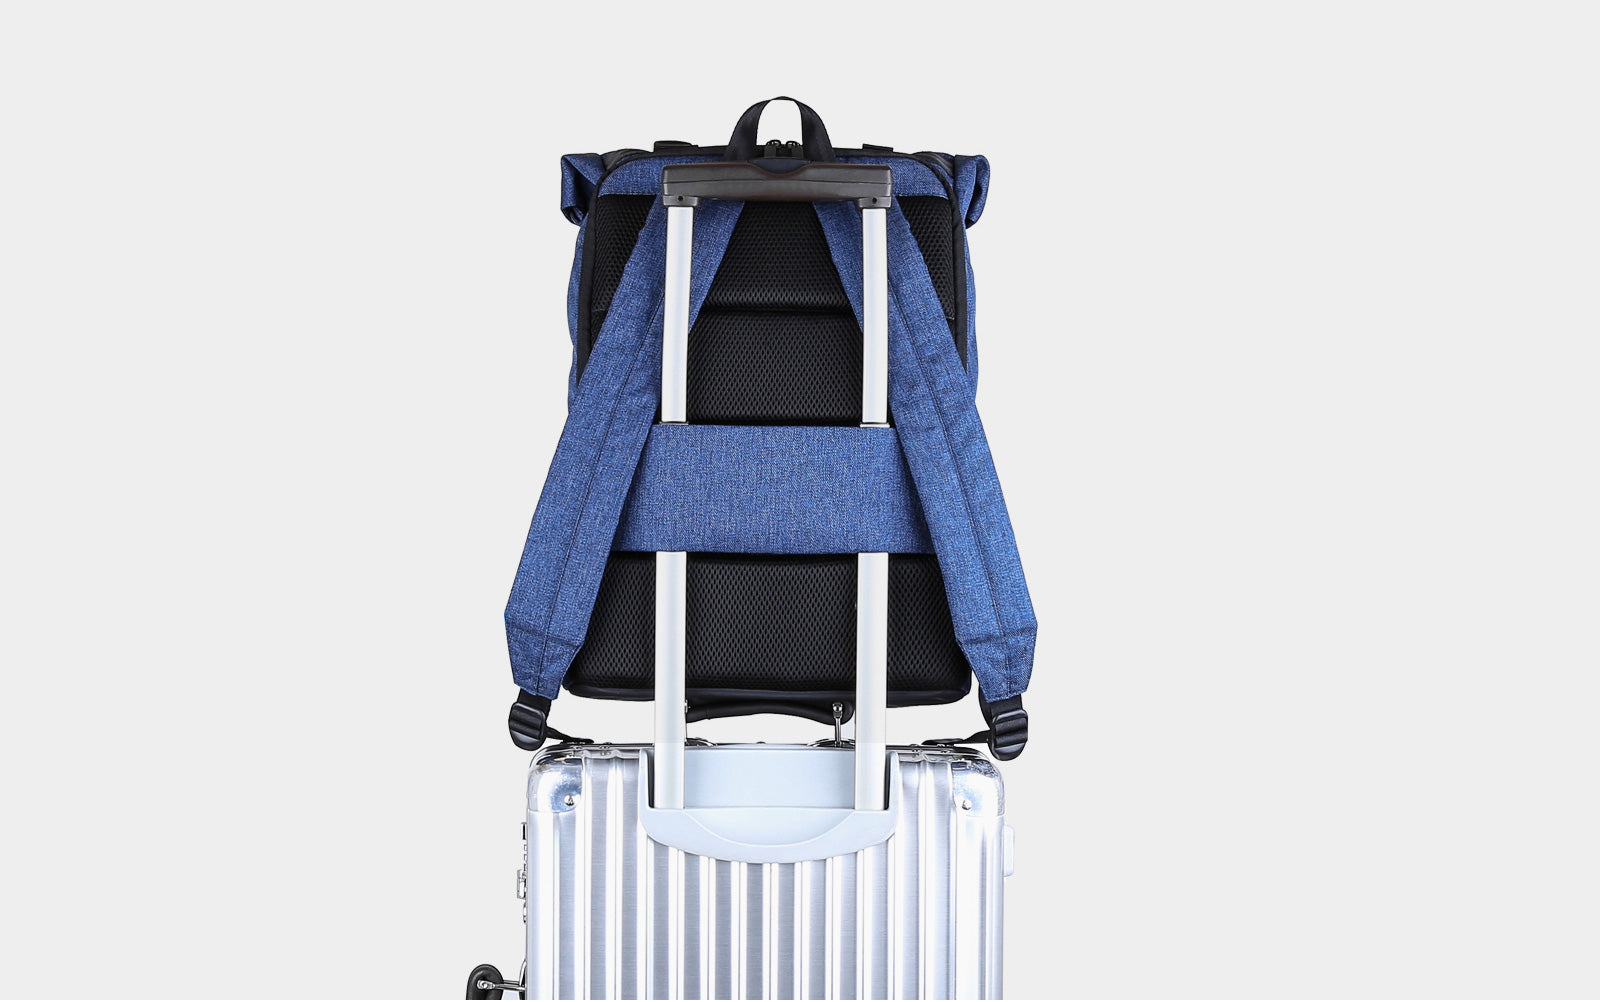 Laptop Backpack Weekender Travel Business Multipurpose Roll-Top Fashion Rucksack Fits 15.6 Inch